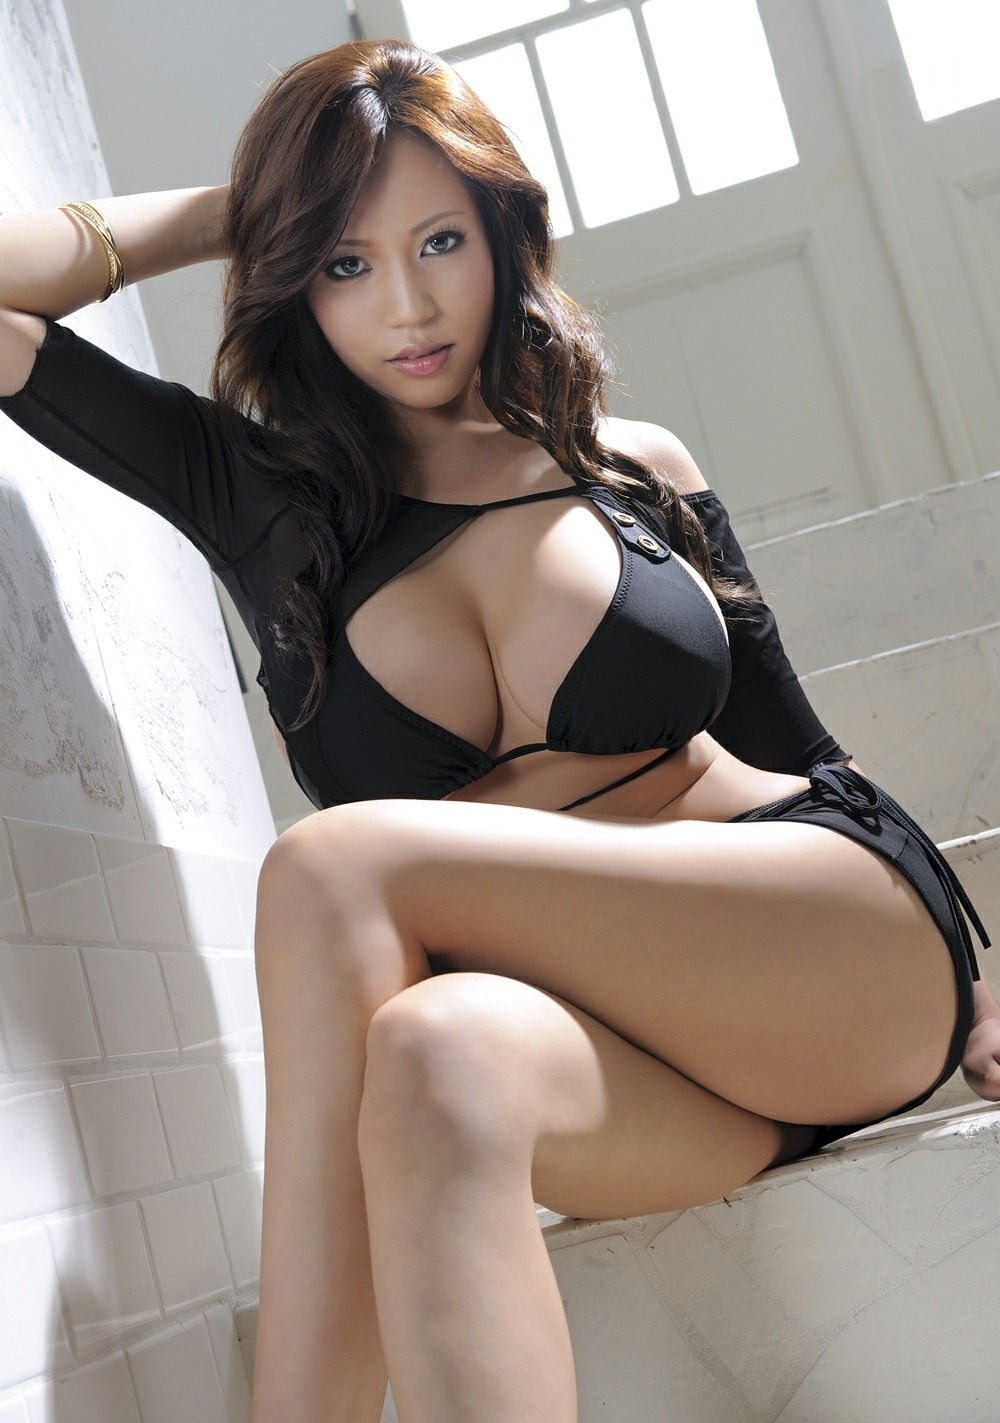 Pin by YellowFEVER on Busty Sexy Asian babes | Pinterest ...